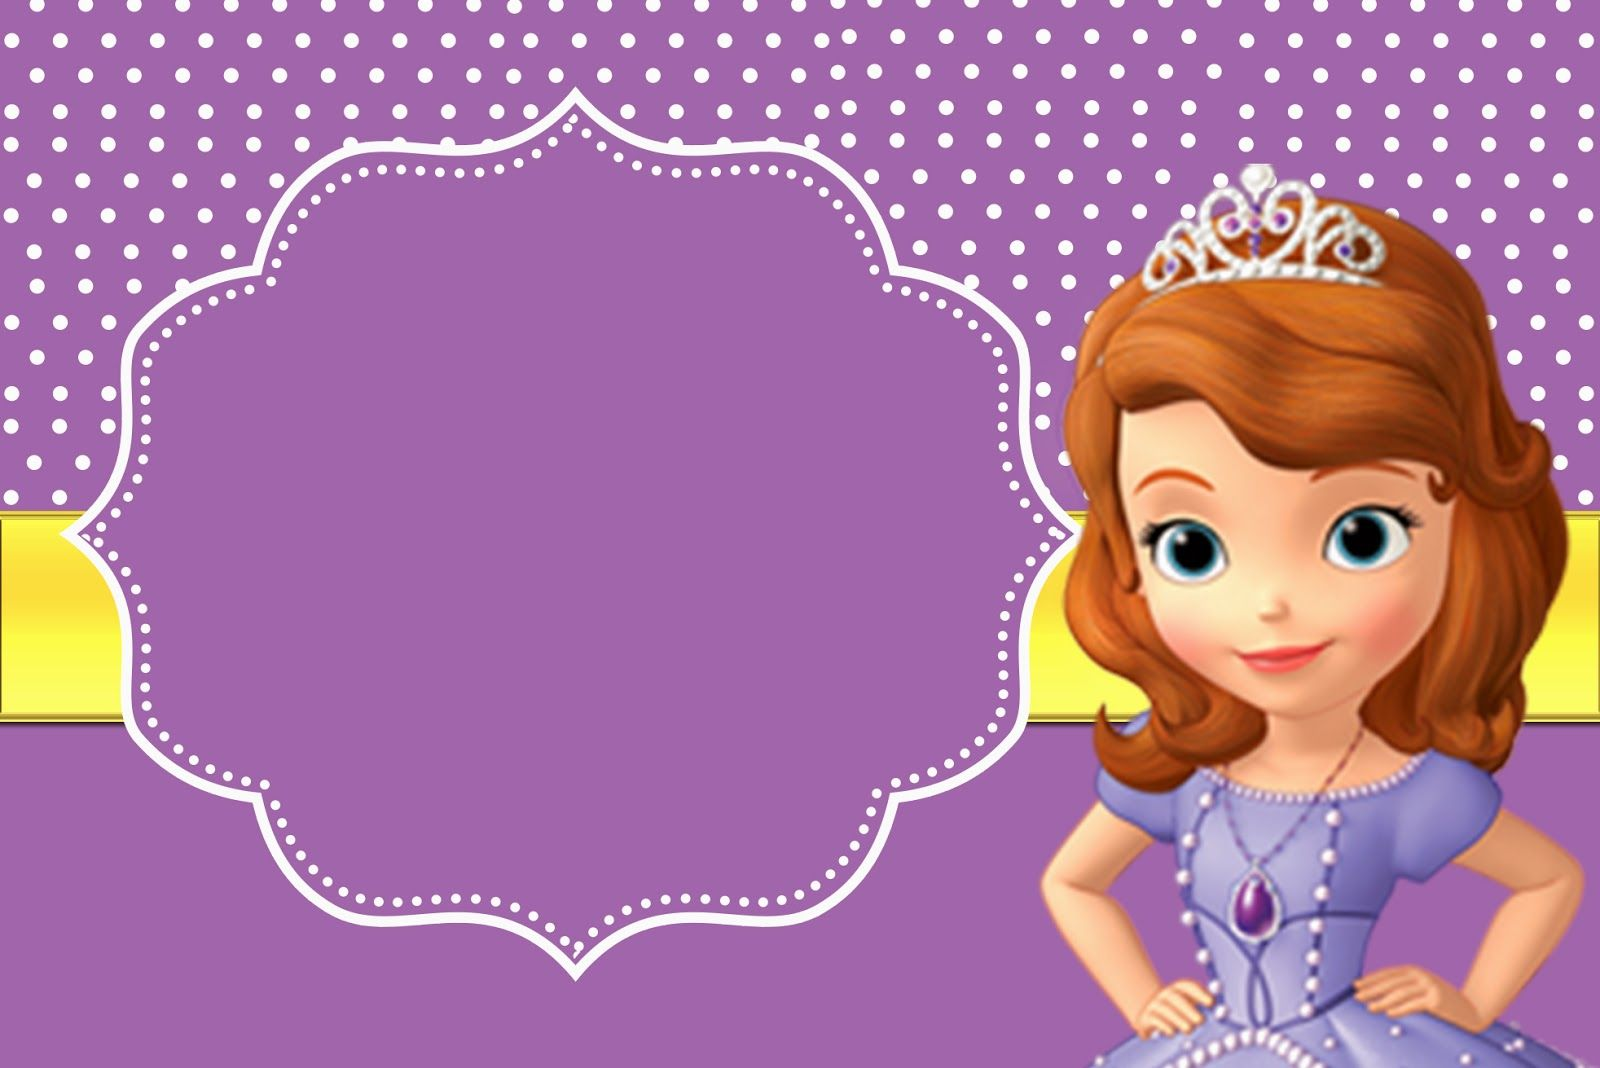 Sofia the First Free Printable Invitations Oh My Fiesta in